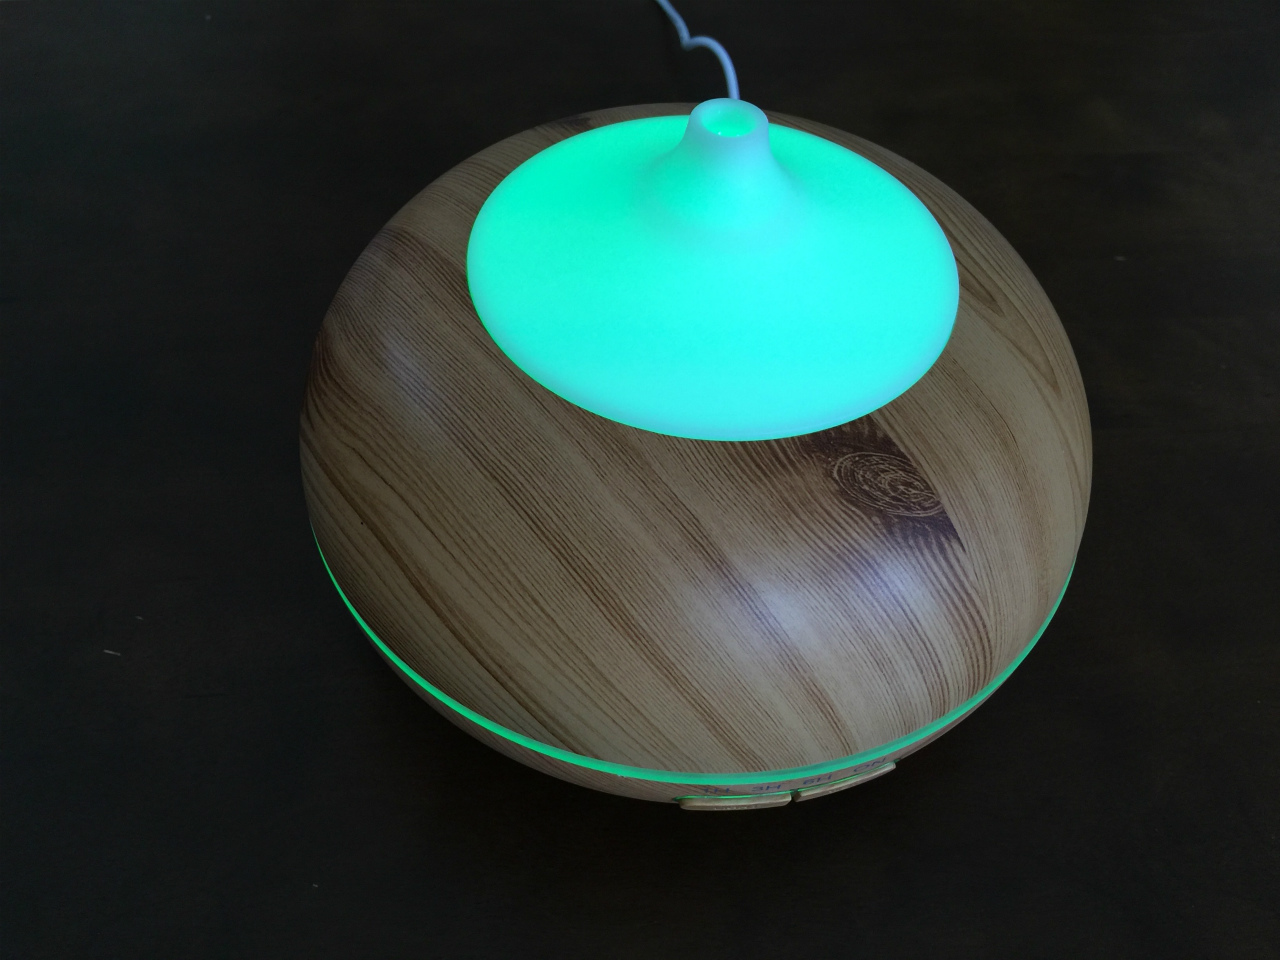 1215-201604_Anypro Aroma Diffuser 300ml 13